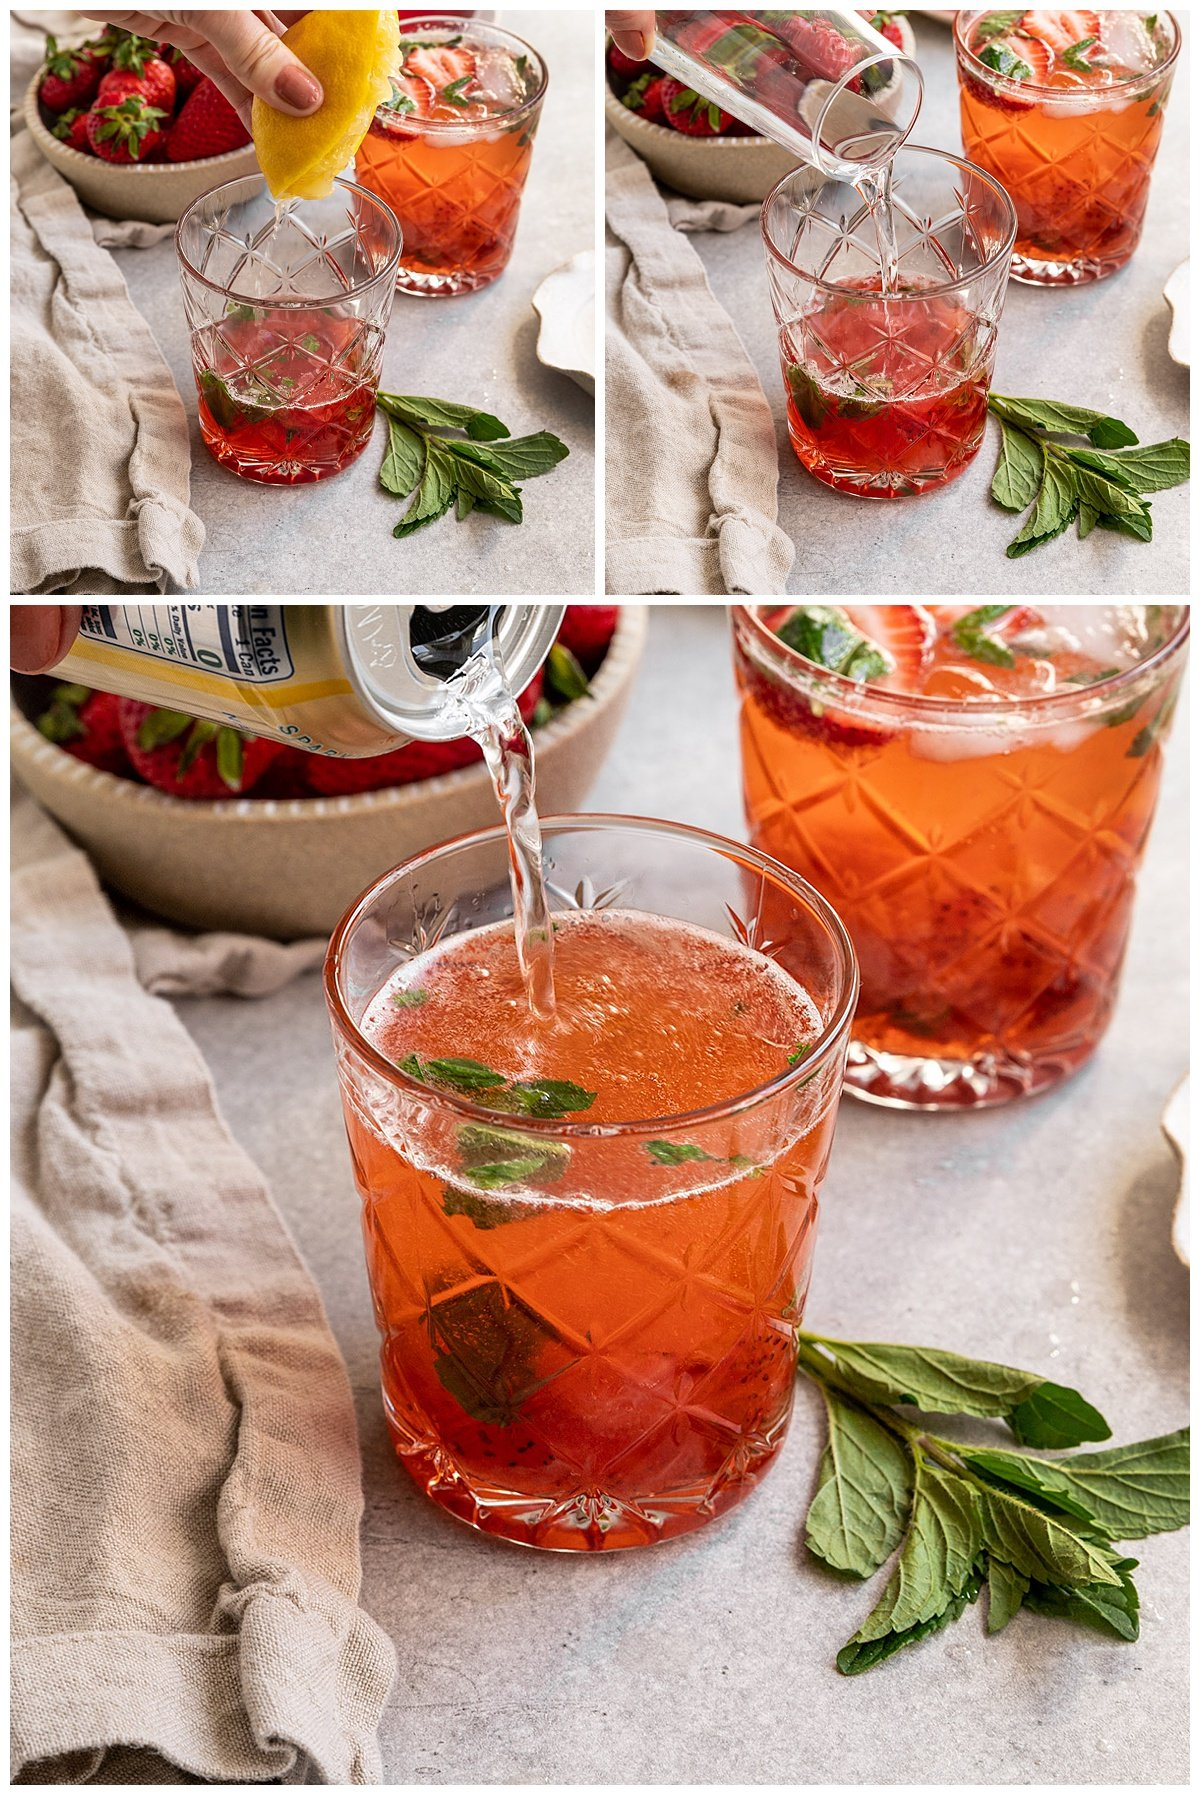 three pictures of gin, lemon juice, and sparkling water being added to a strawberry mojito